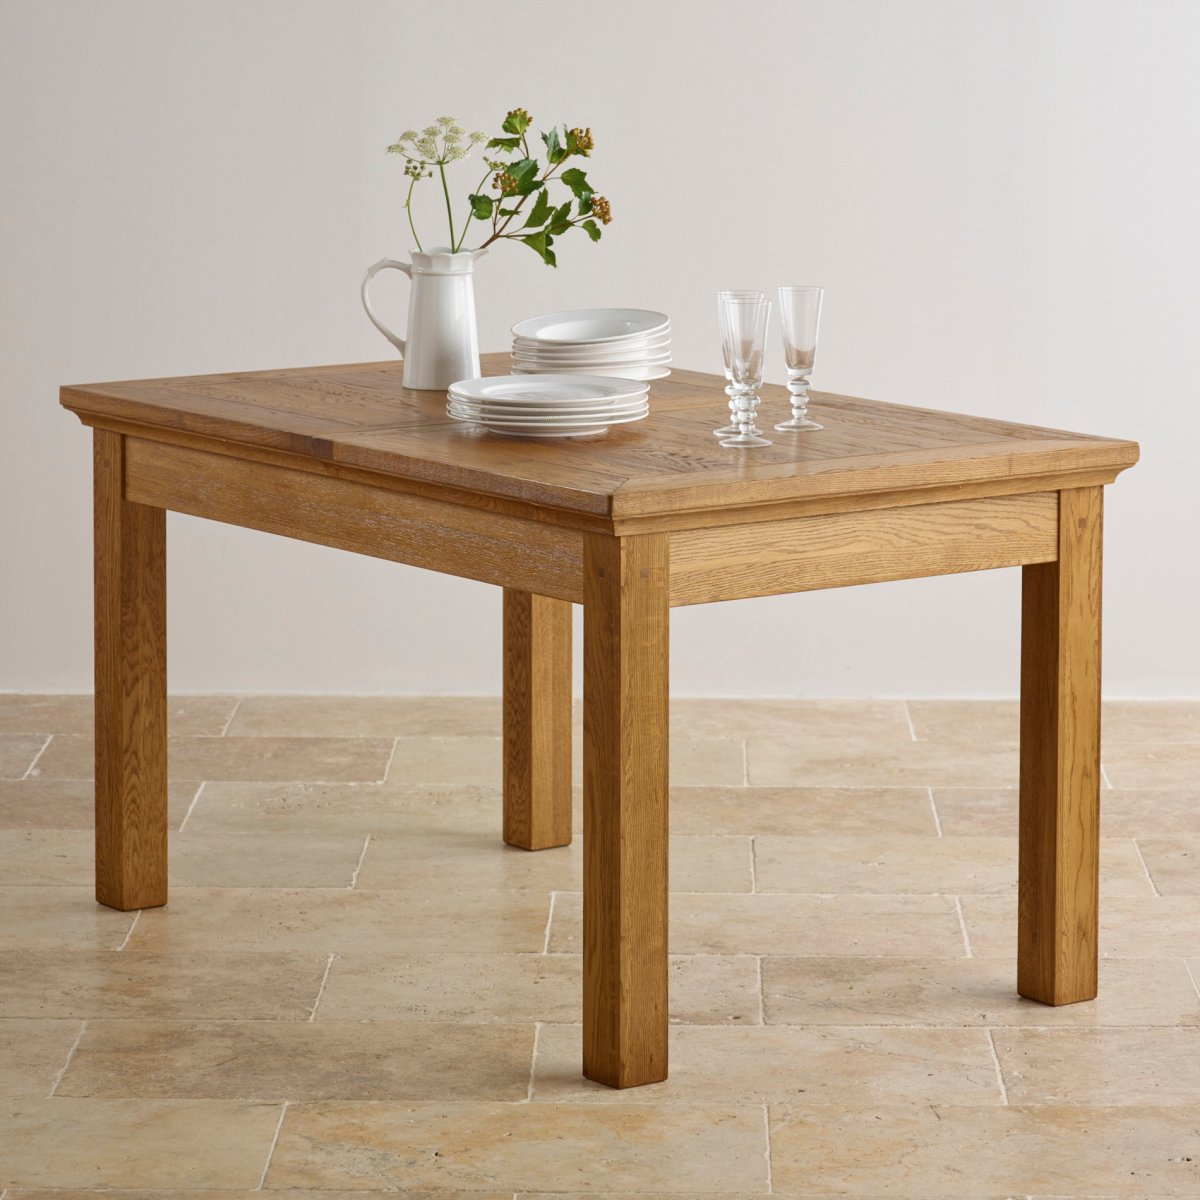 Extendable Dining Set In Rustic Brushed Solid Oak: Extendable Dining Table In Brushed Oak